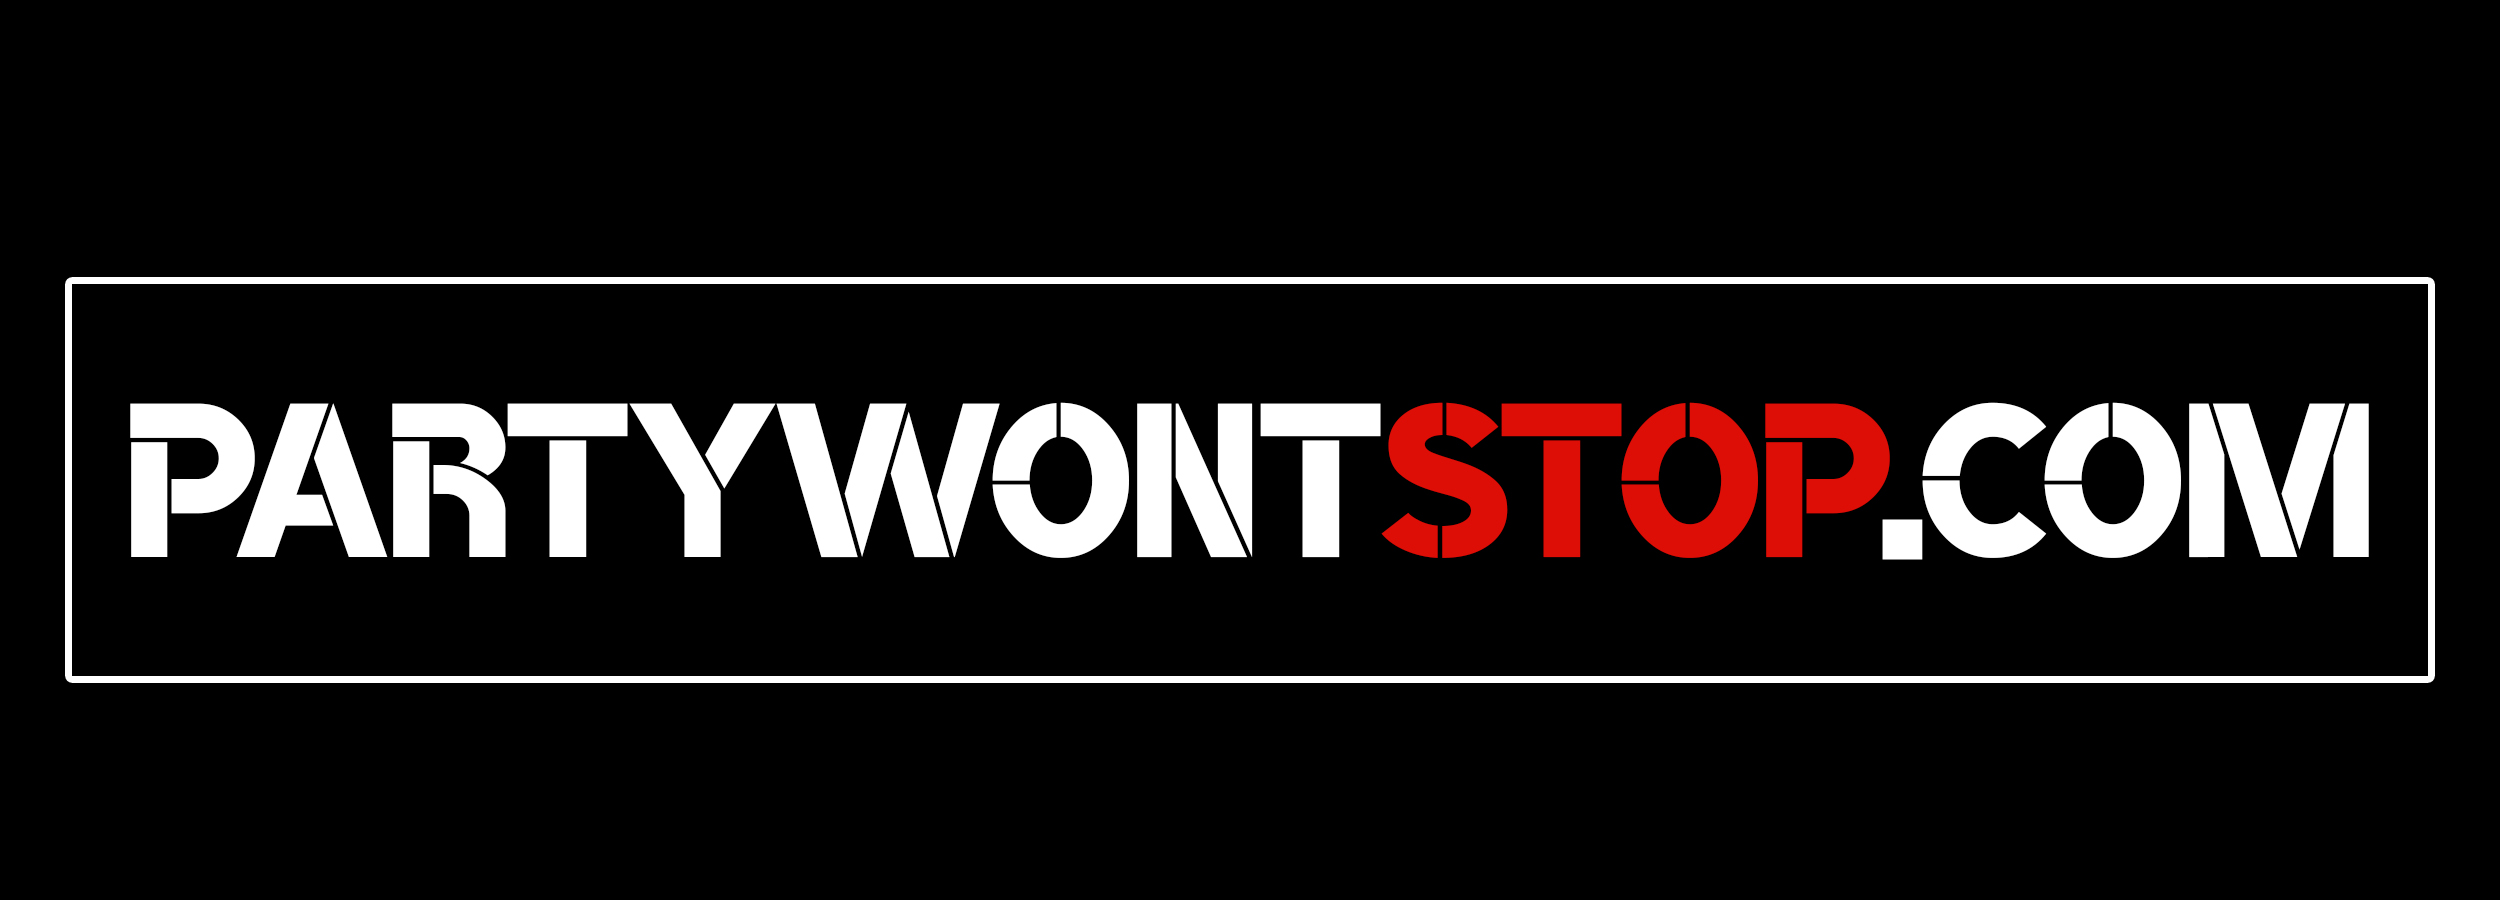 PARTY WONT STOP BANNER LOGO.jpg